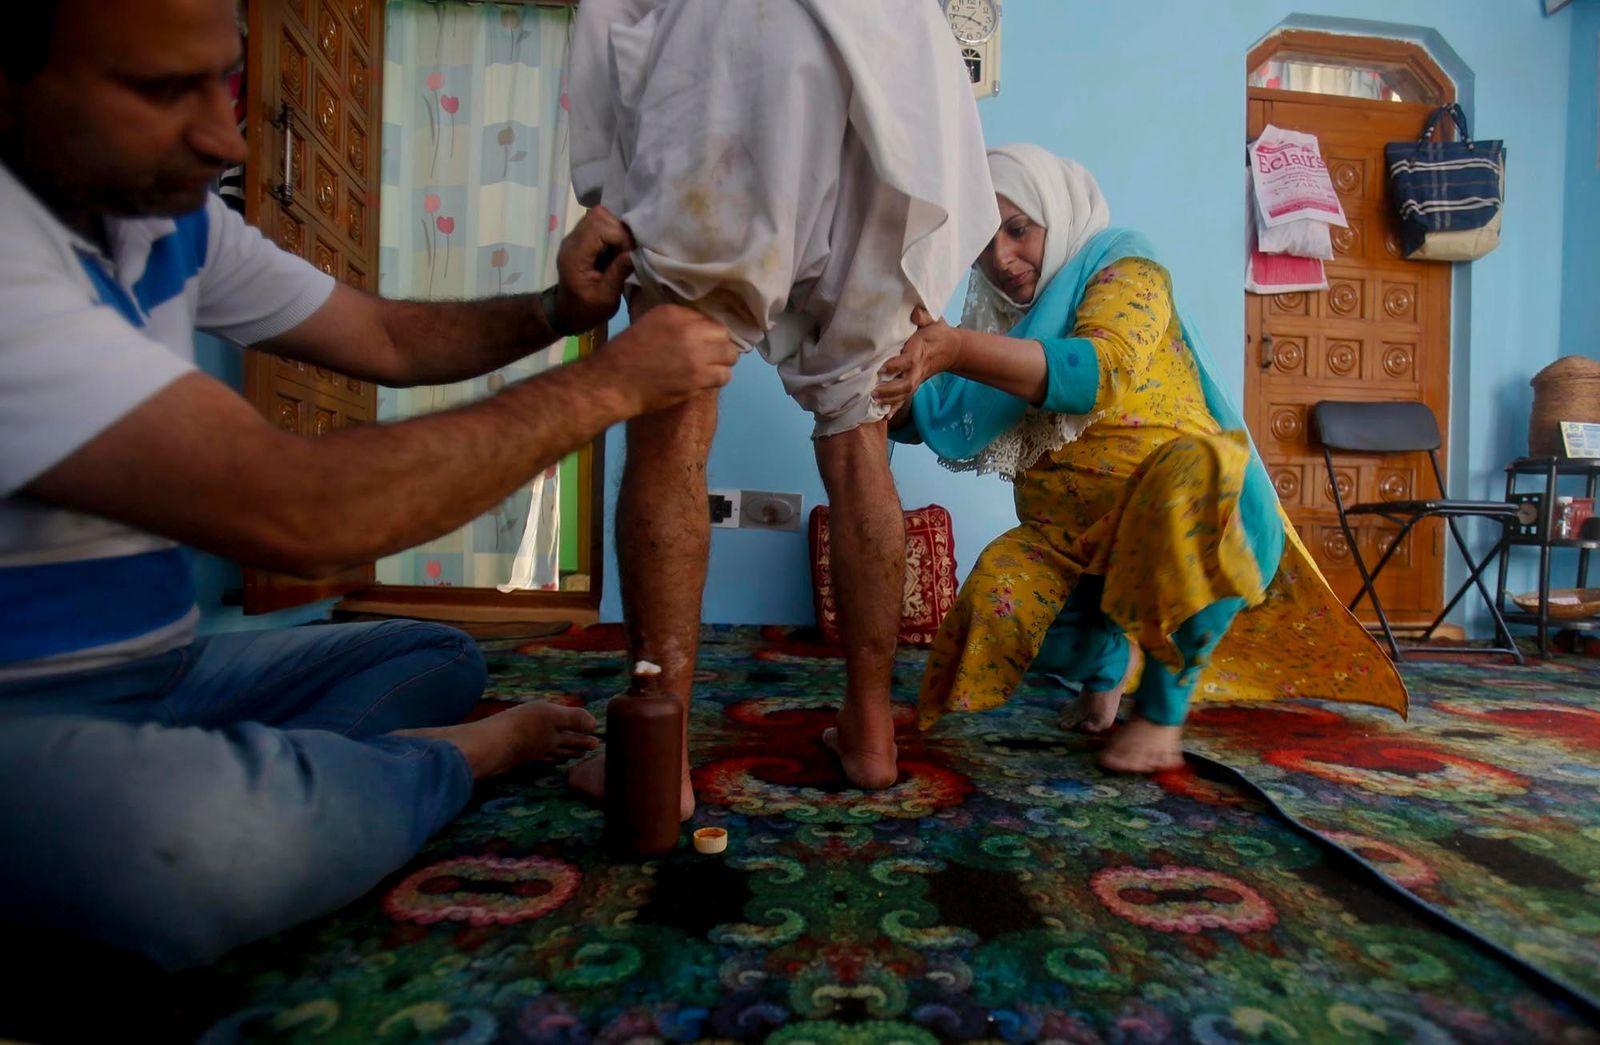 Family members of Kashmiri youth Gulam Rasool Bhat apply medicine on pellet wounds on his body inside his home in Srinagar, Indian controlled Kashmir, Tuesday, Aug. 20, 2019. The president of Pakistani-administered Kashmir welcomed efforts by U.S. President Donald Trump to lower tensions between Pakistan and India over the disputed Himalayan region on Tuesday and warned of a deepening humanitarian crisis and food shortages in the Indian-held portion. (AP Photo/Mukhtar Khan)